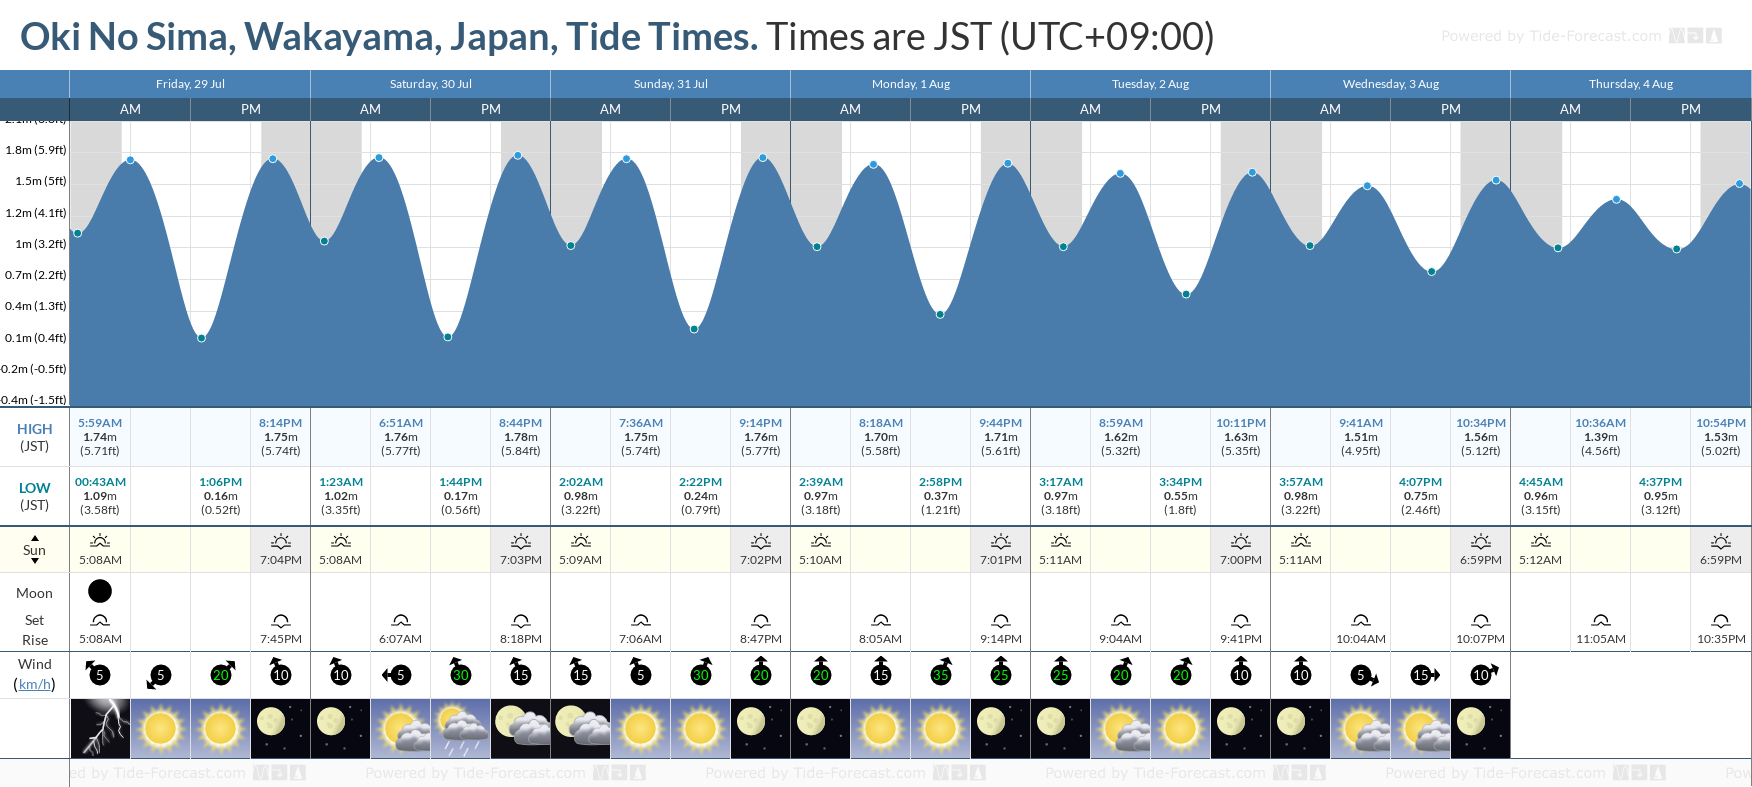 Oki No Sima, Wakayama, Japan Tide Chart including high and low tide tide times for the next 7 days